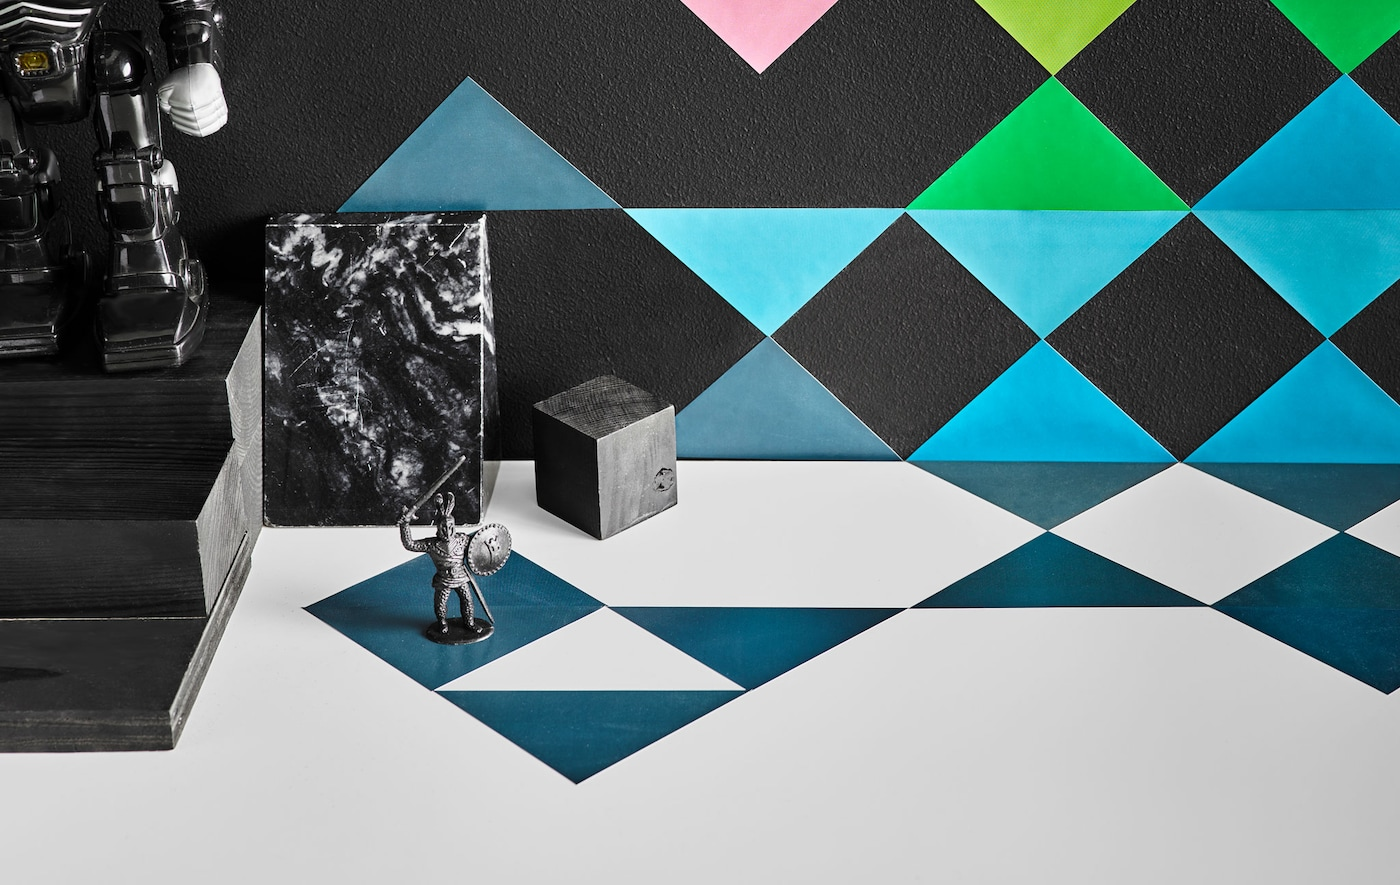 A close up image of multi-coloured triangular stickers arranged decoratively on a wall and a kid's desk.